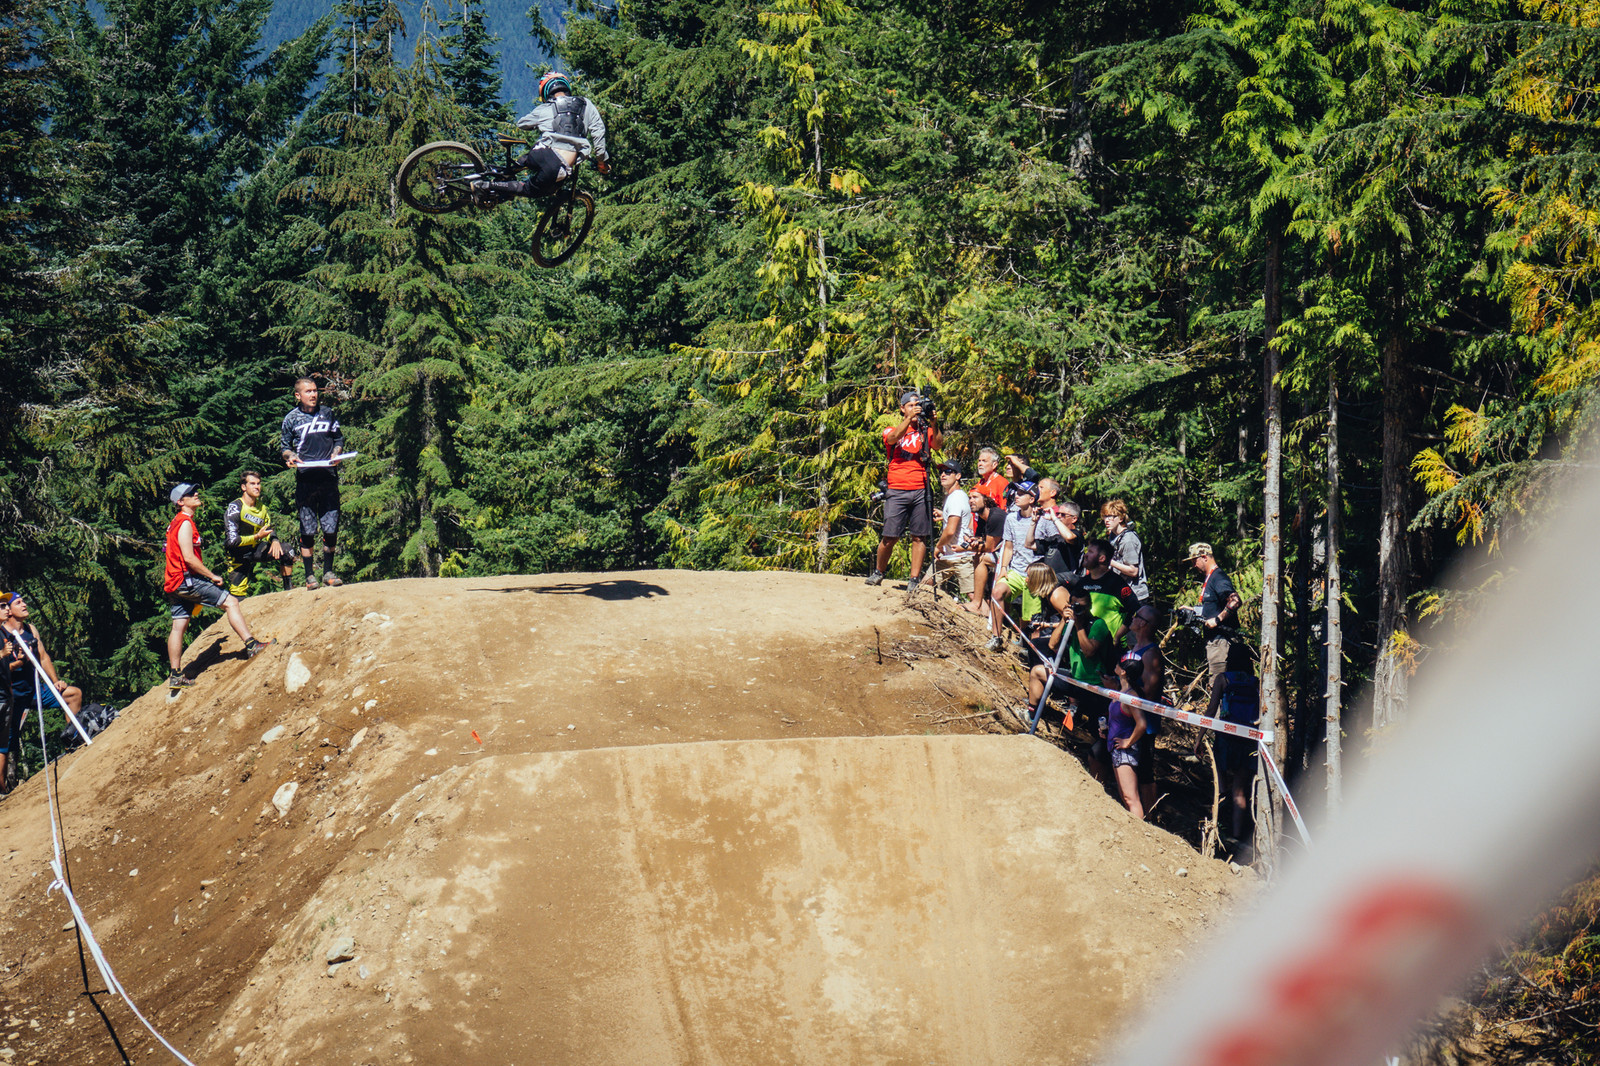 Waapaaa! - Whip Off World Champs Qualifiers - Going for Broke: 14 Super Sideways Senders from Whip Off World Champs Qualifiers - Mountain Biking Pictures - Vital MTB